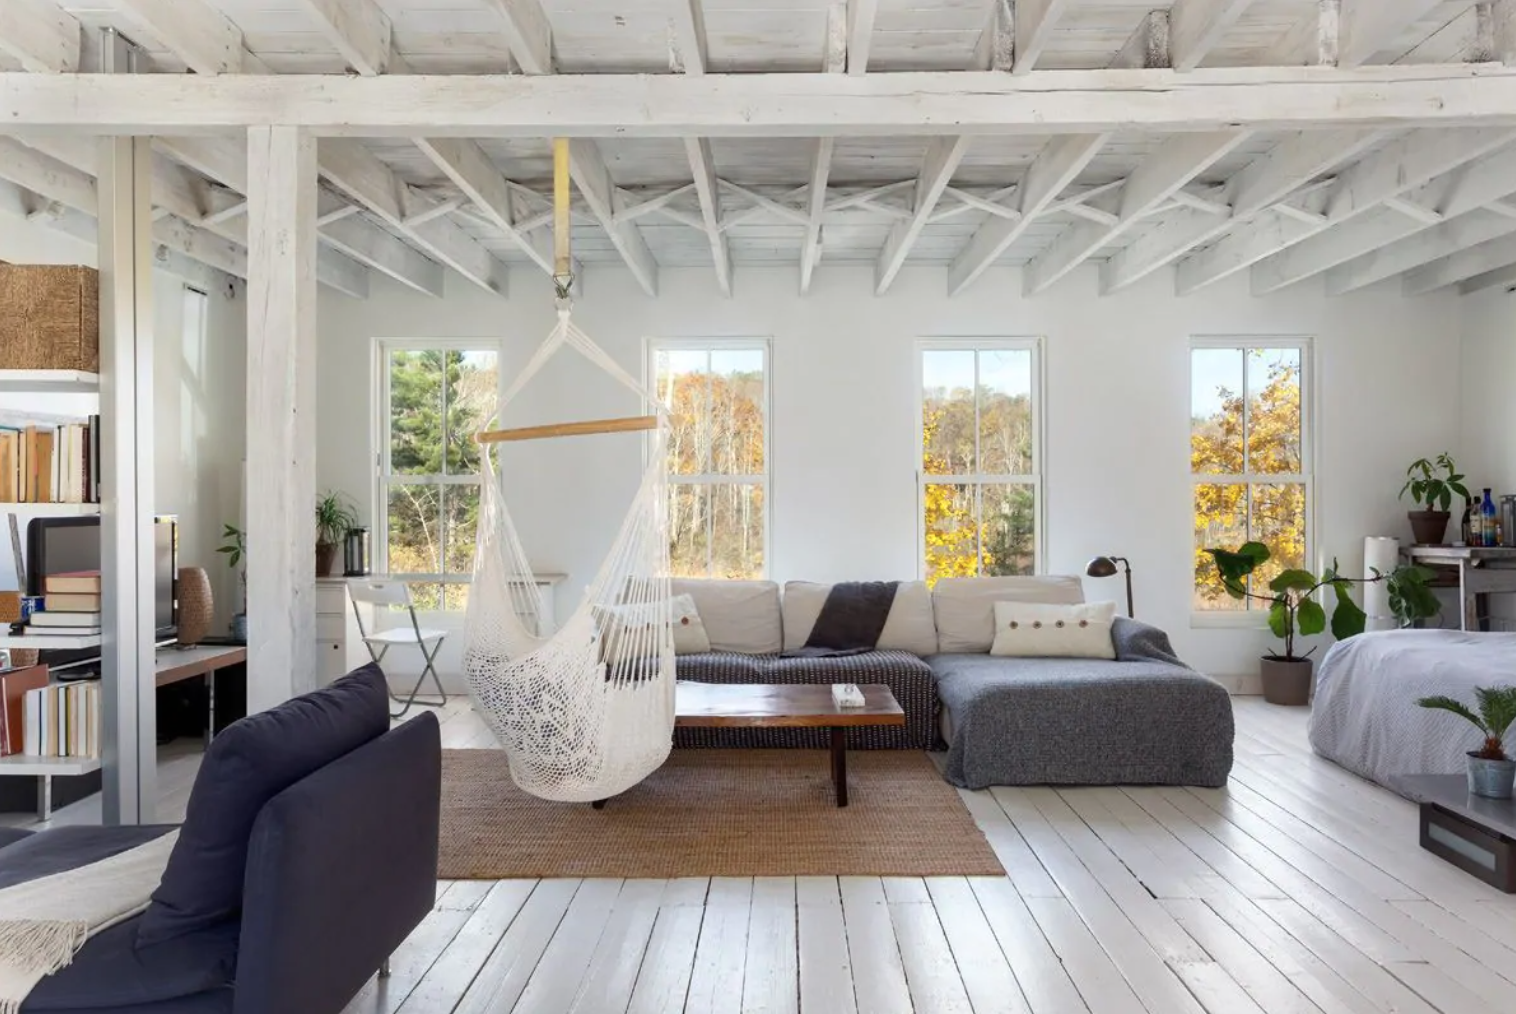 The Barn Rustic Chic Loft Airbnb